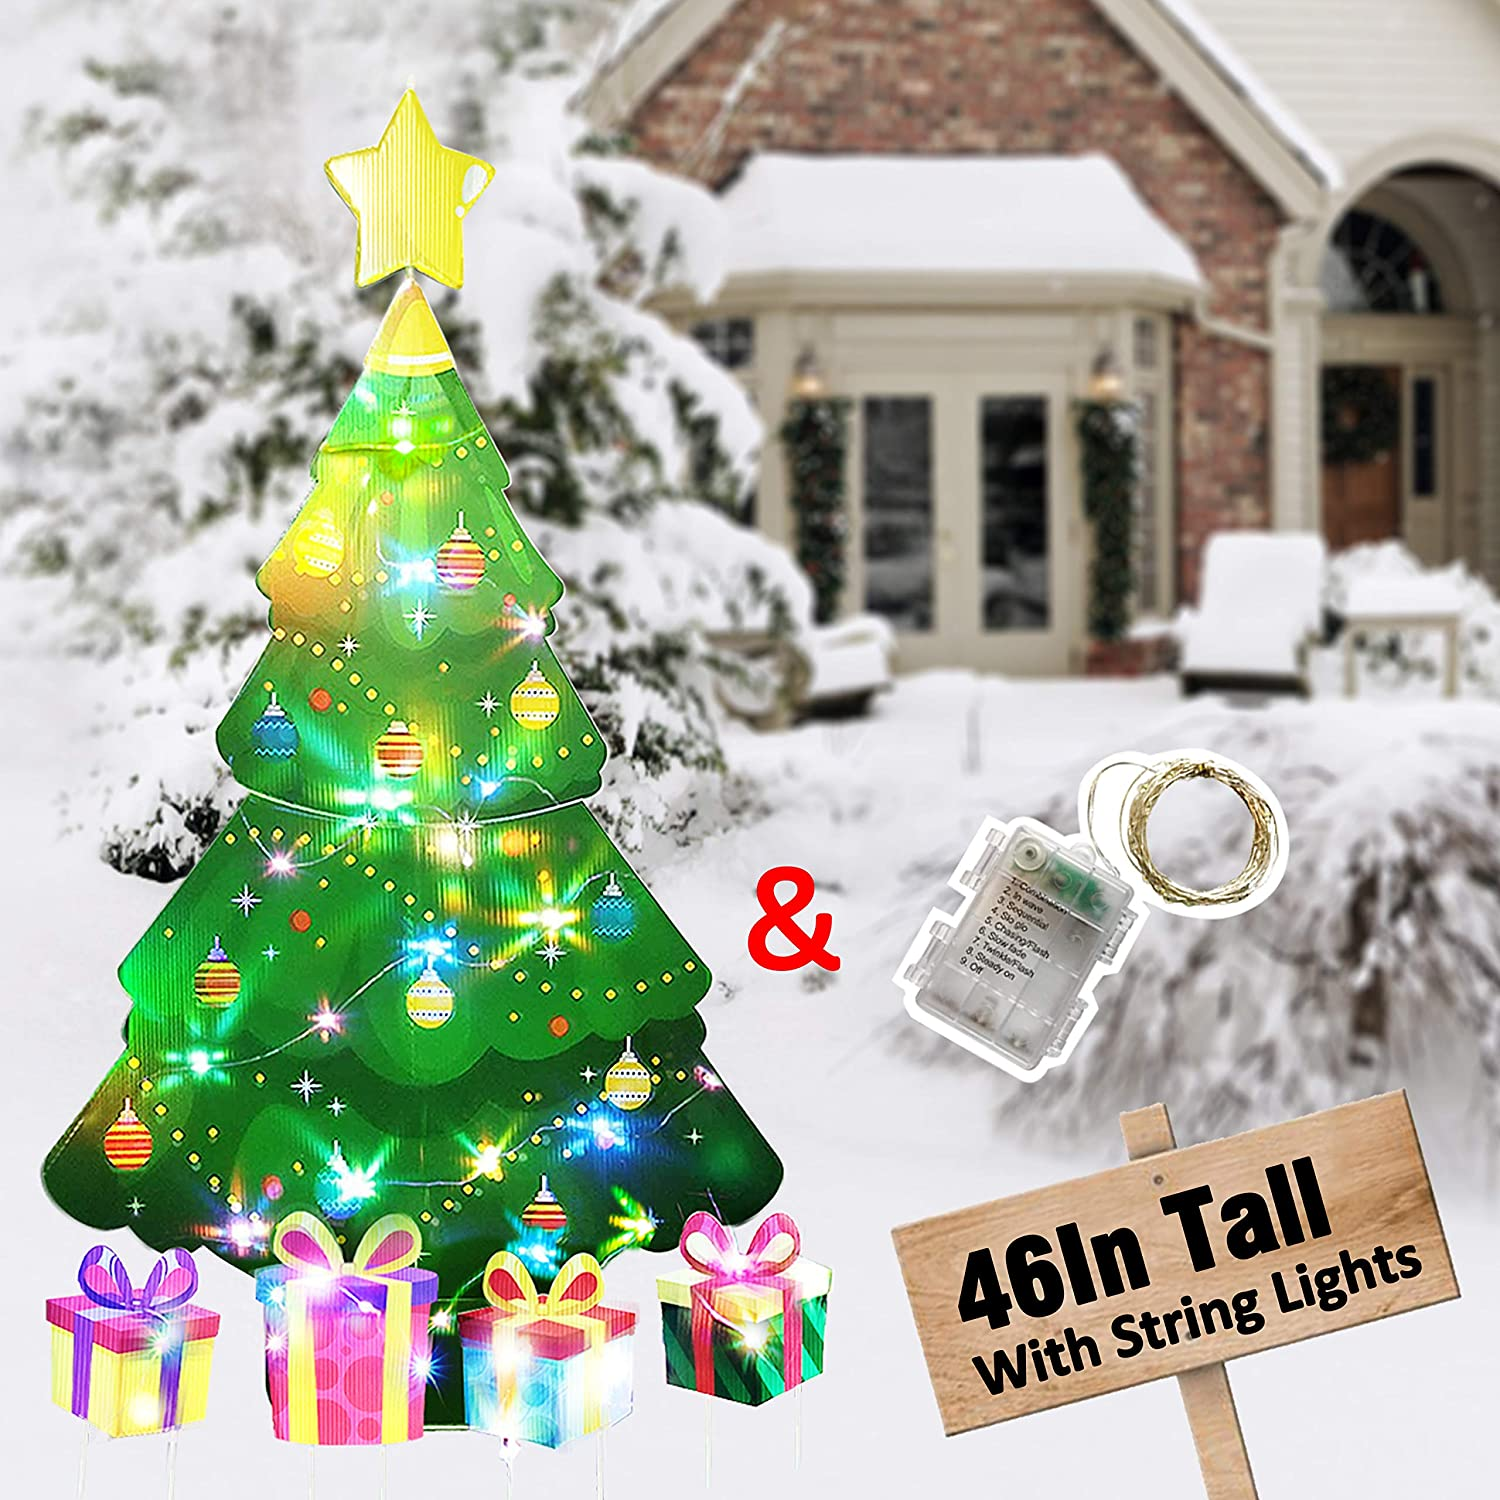 HOSKO Christmas Tree Decor, 46inch Xmas Yard Signs Stakes with String Lights, Xmas Decorations for Outside Outdoor Giant Holiday Candyland Themed Party Walkway Pathway Lawn Garden